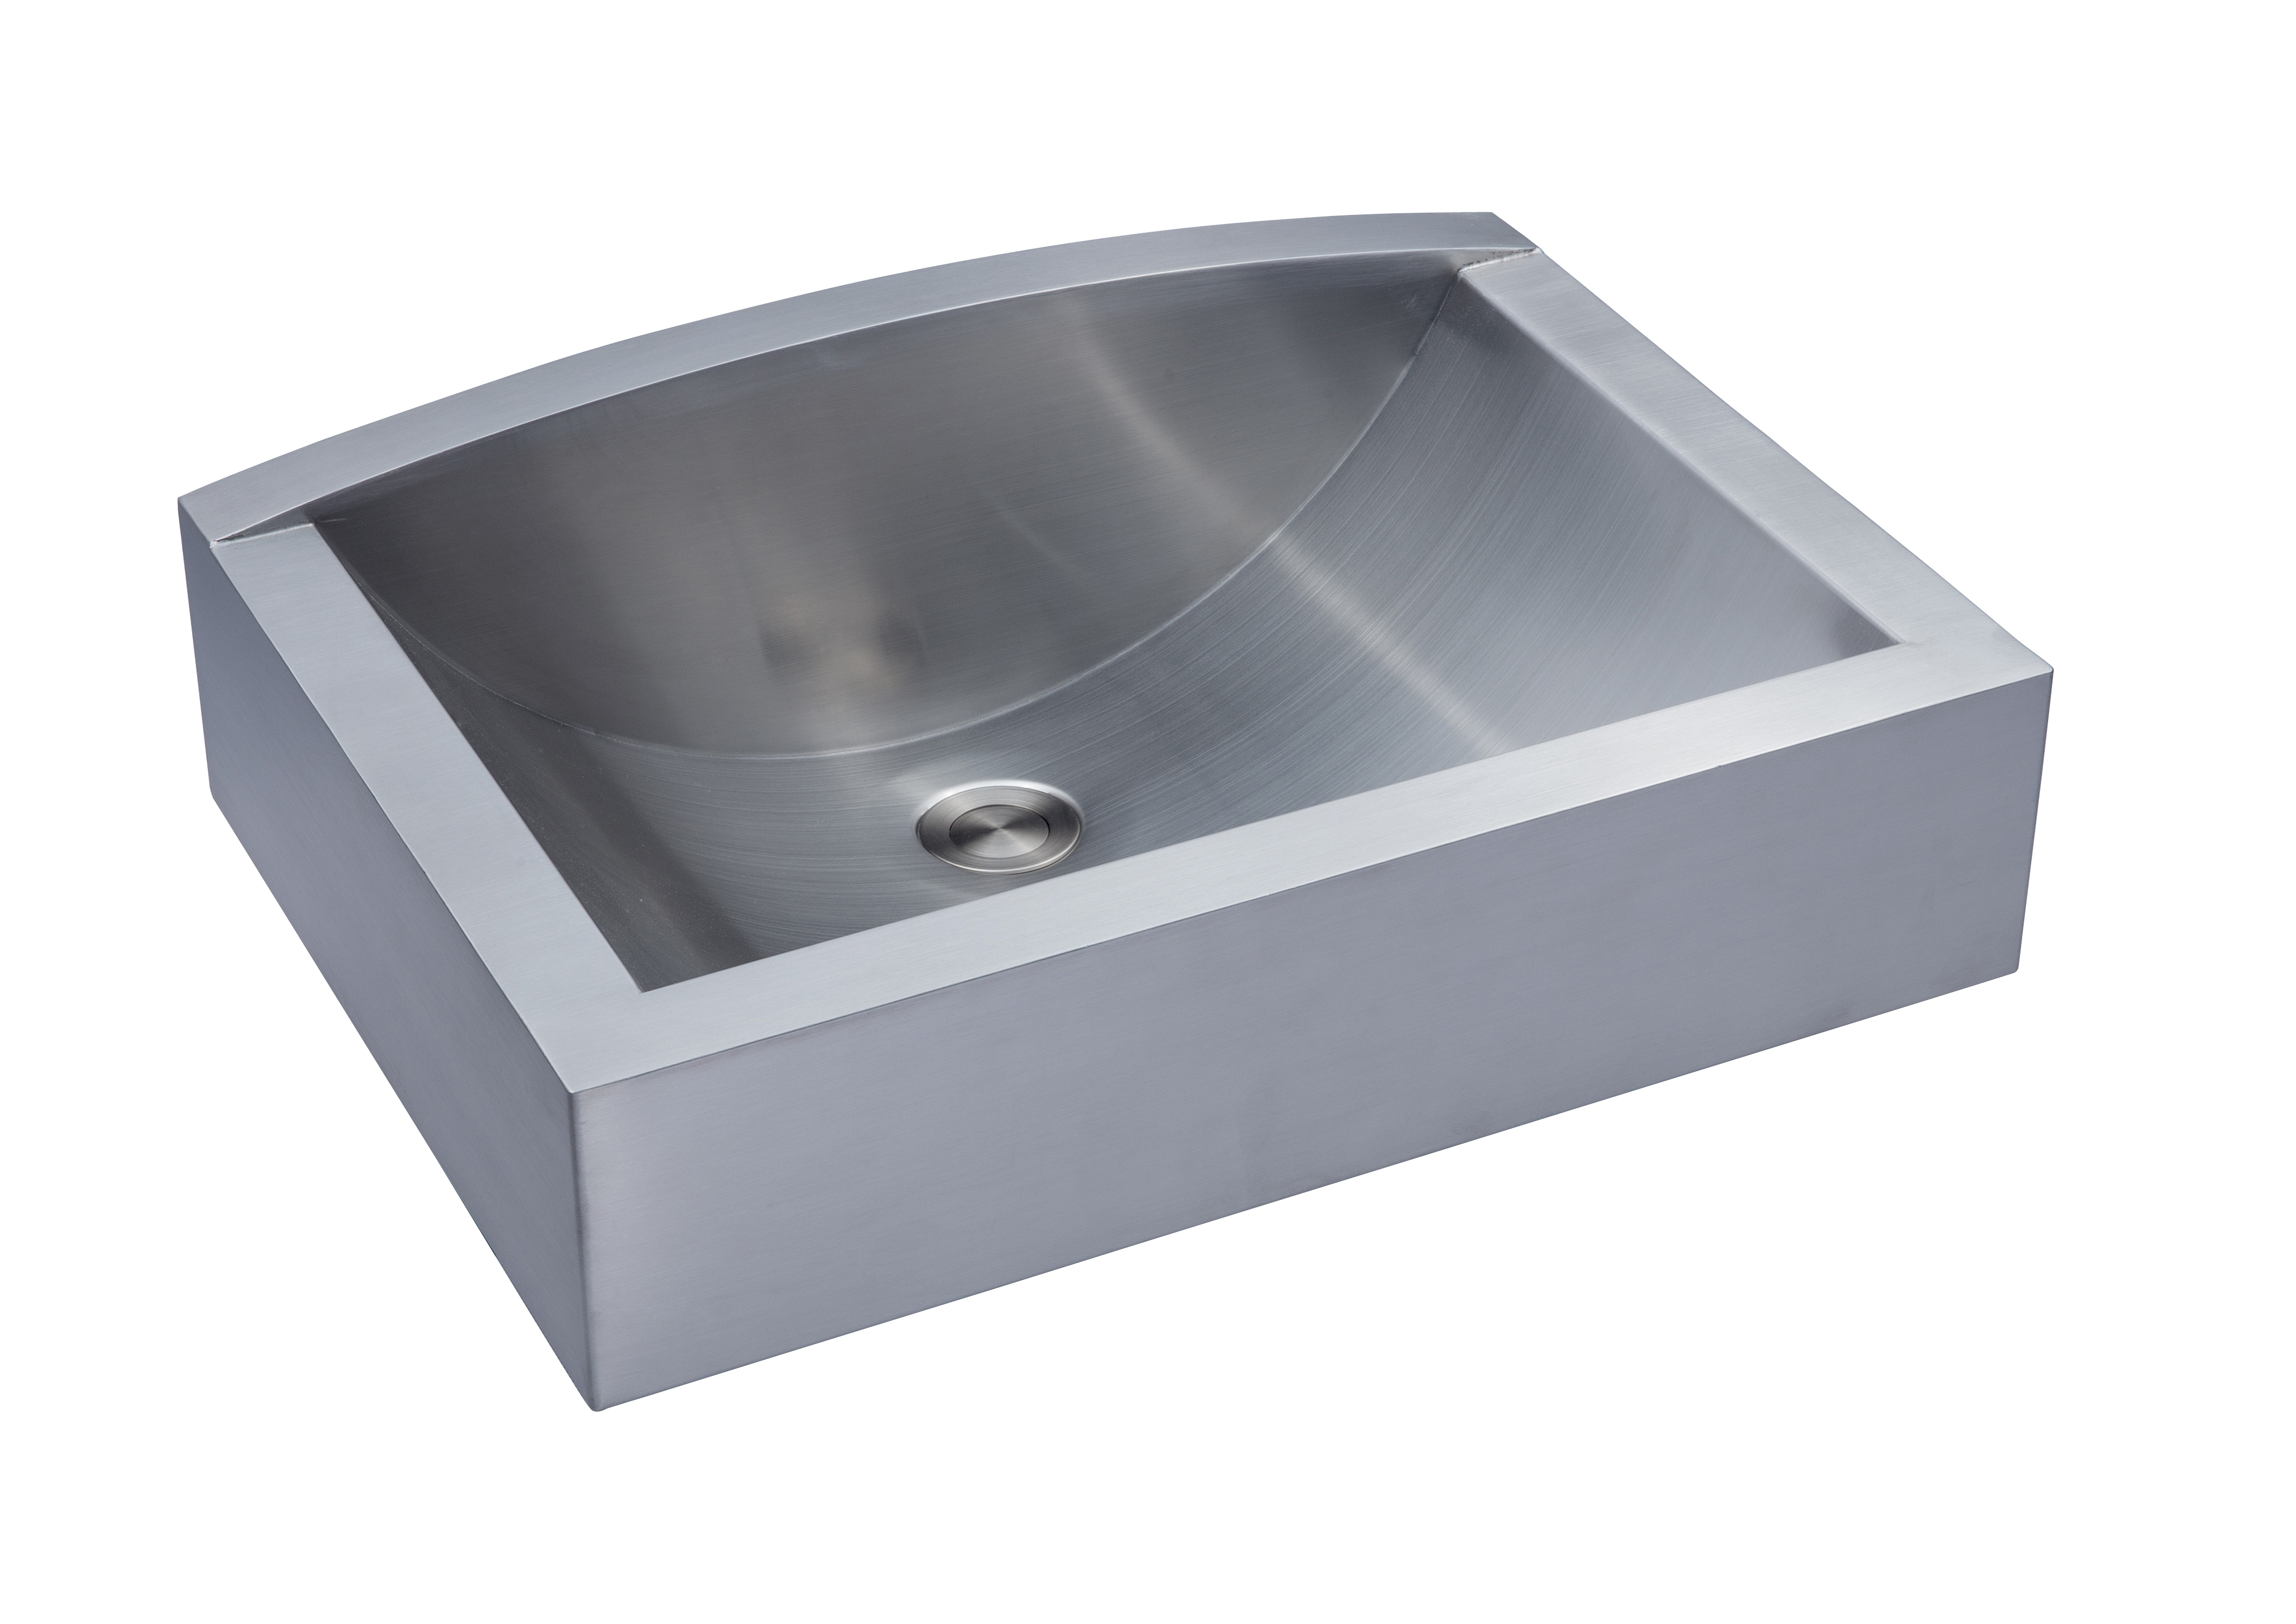 Stainless Steel Bathroom Sink Vessel Ss